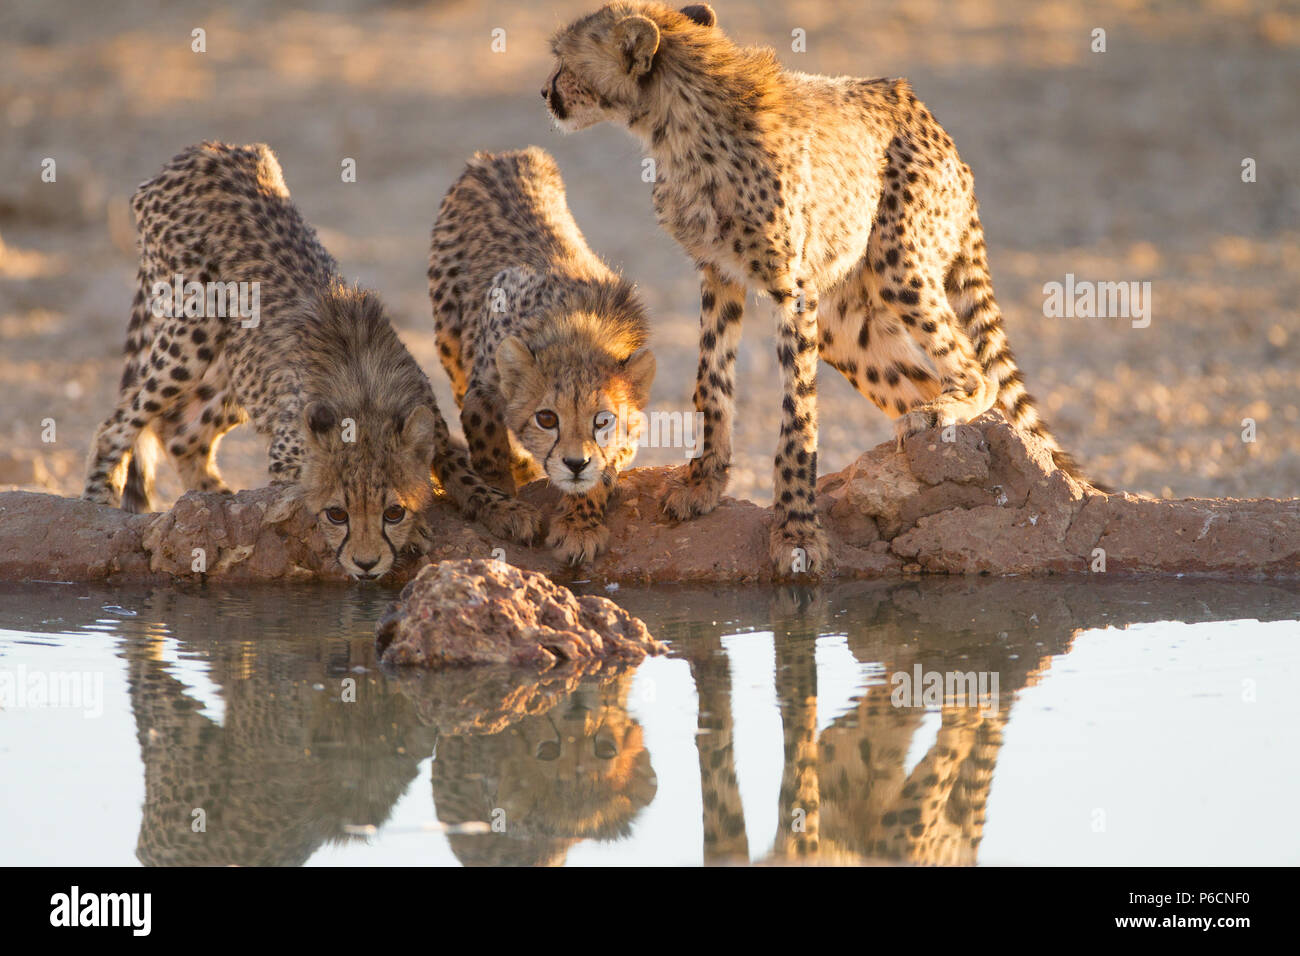 Cheetah Cubs drinking water from a Pond - Stock Image